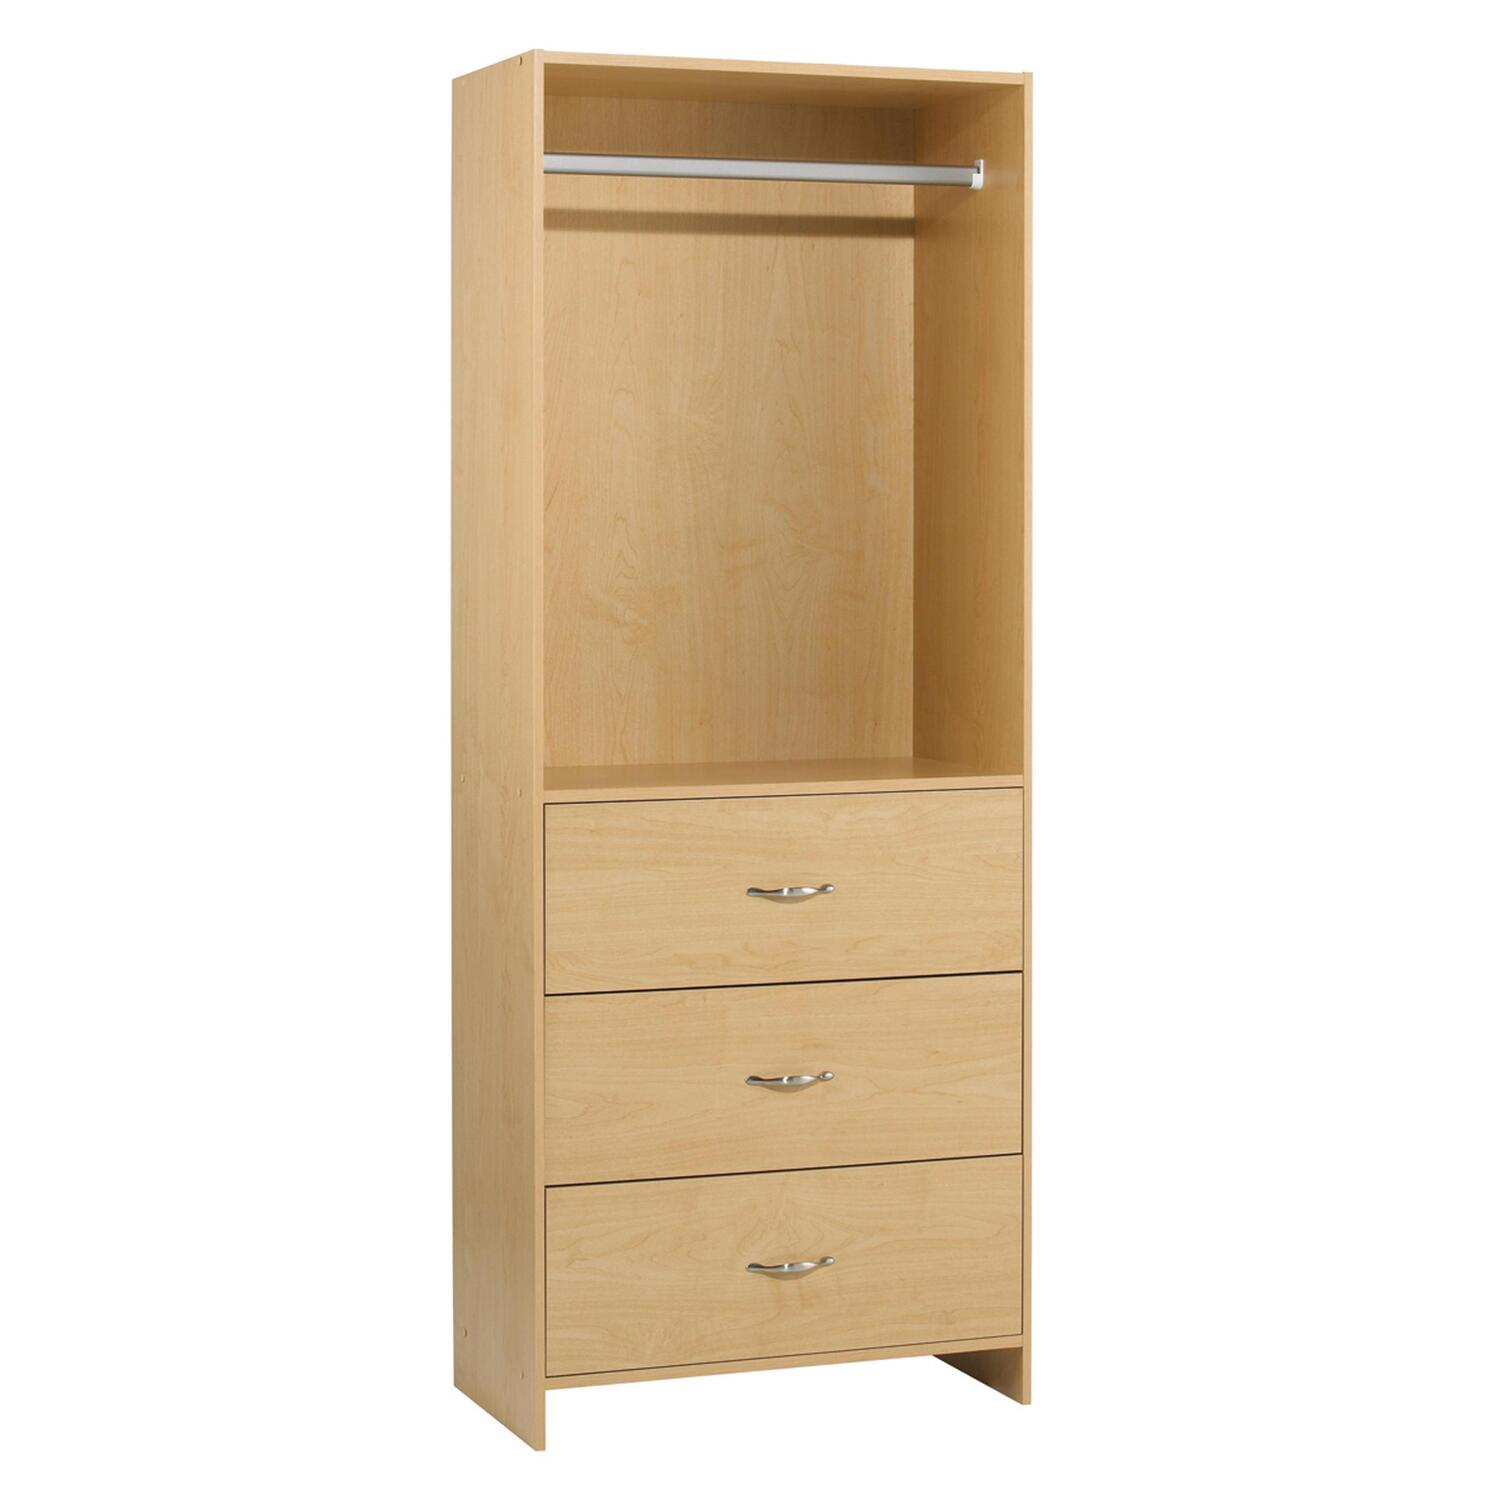 to drawer drawers regard measurements fronts with x furniture tower storage closet white shaker style